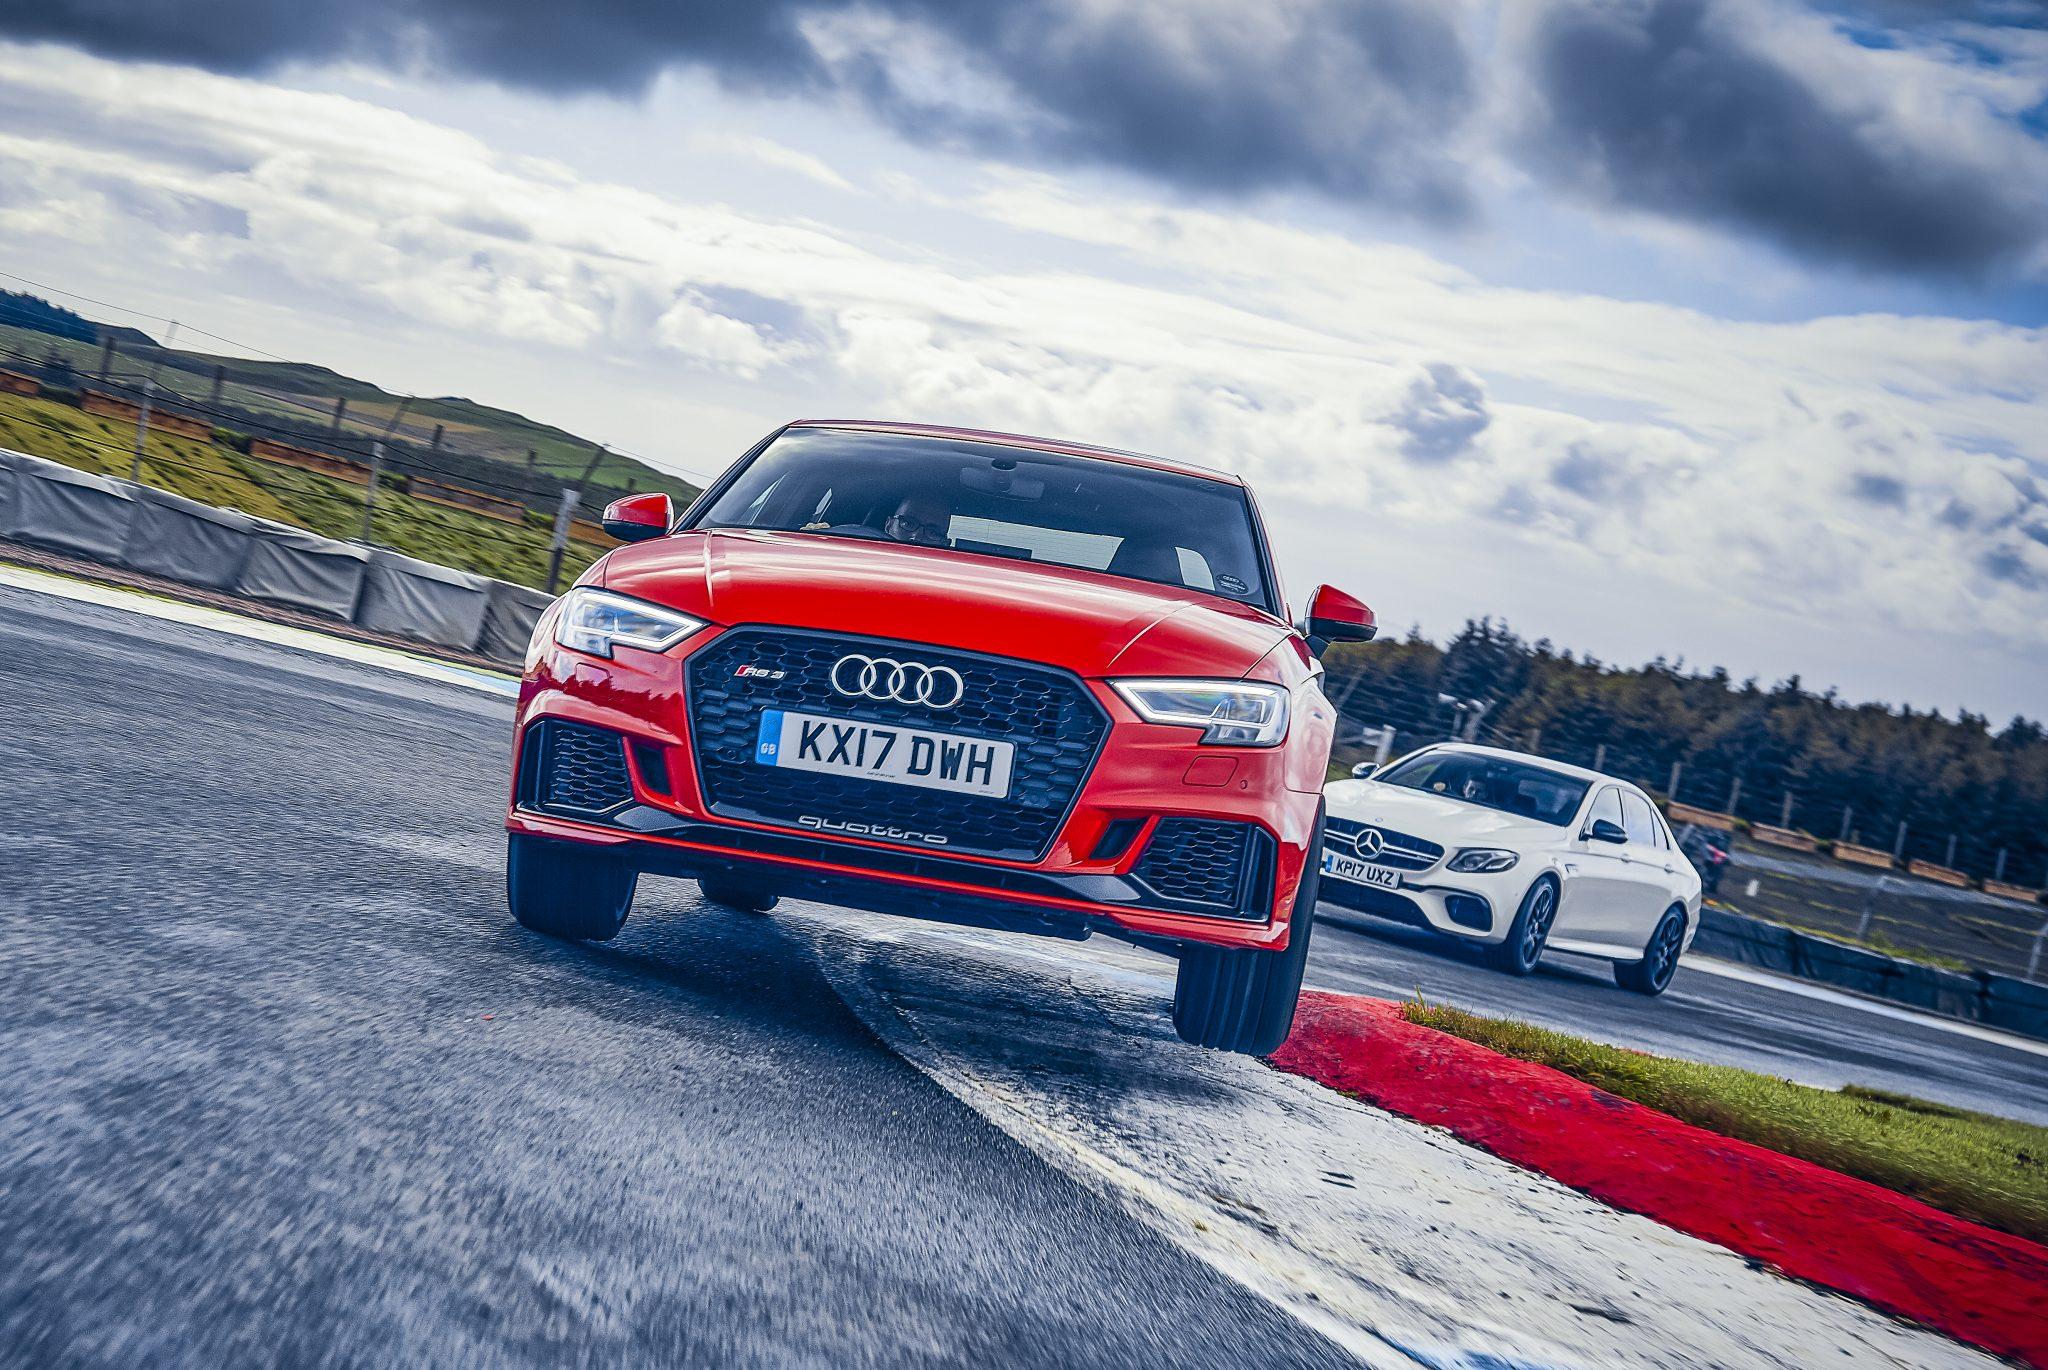 Audi RS 3 limousine circuit curbstone